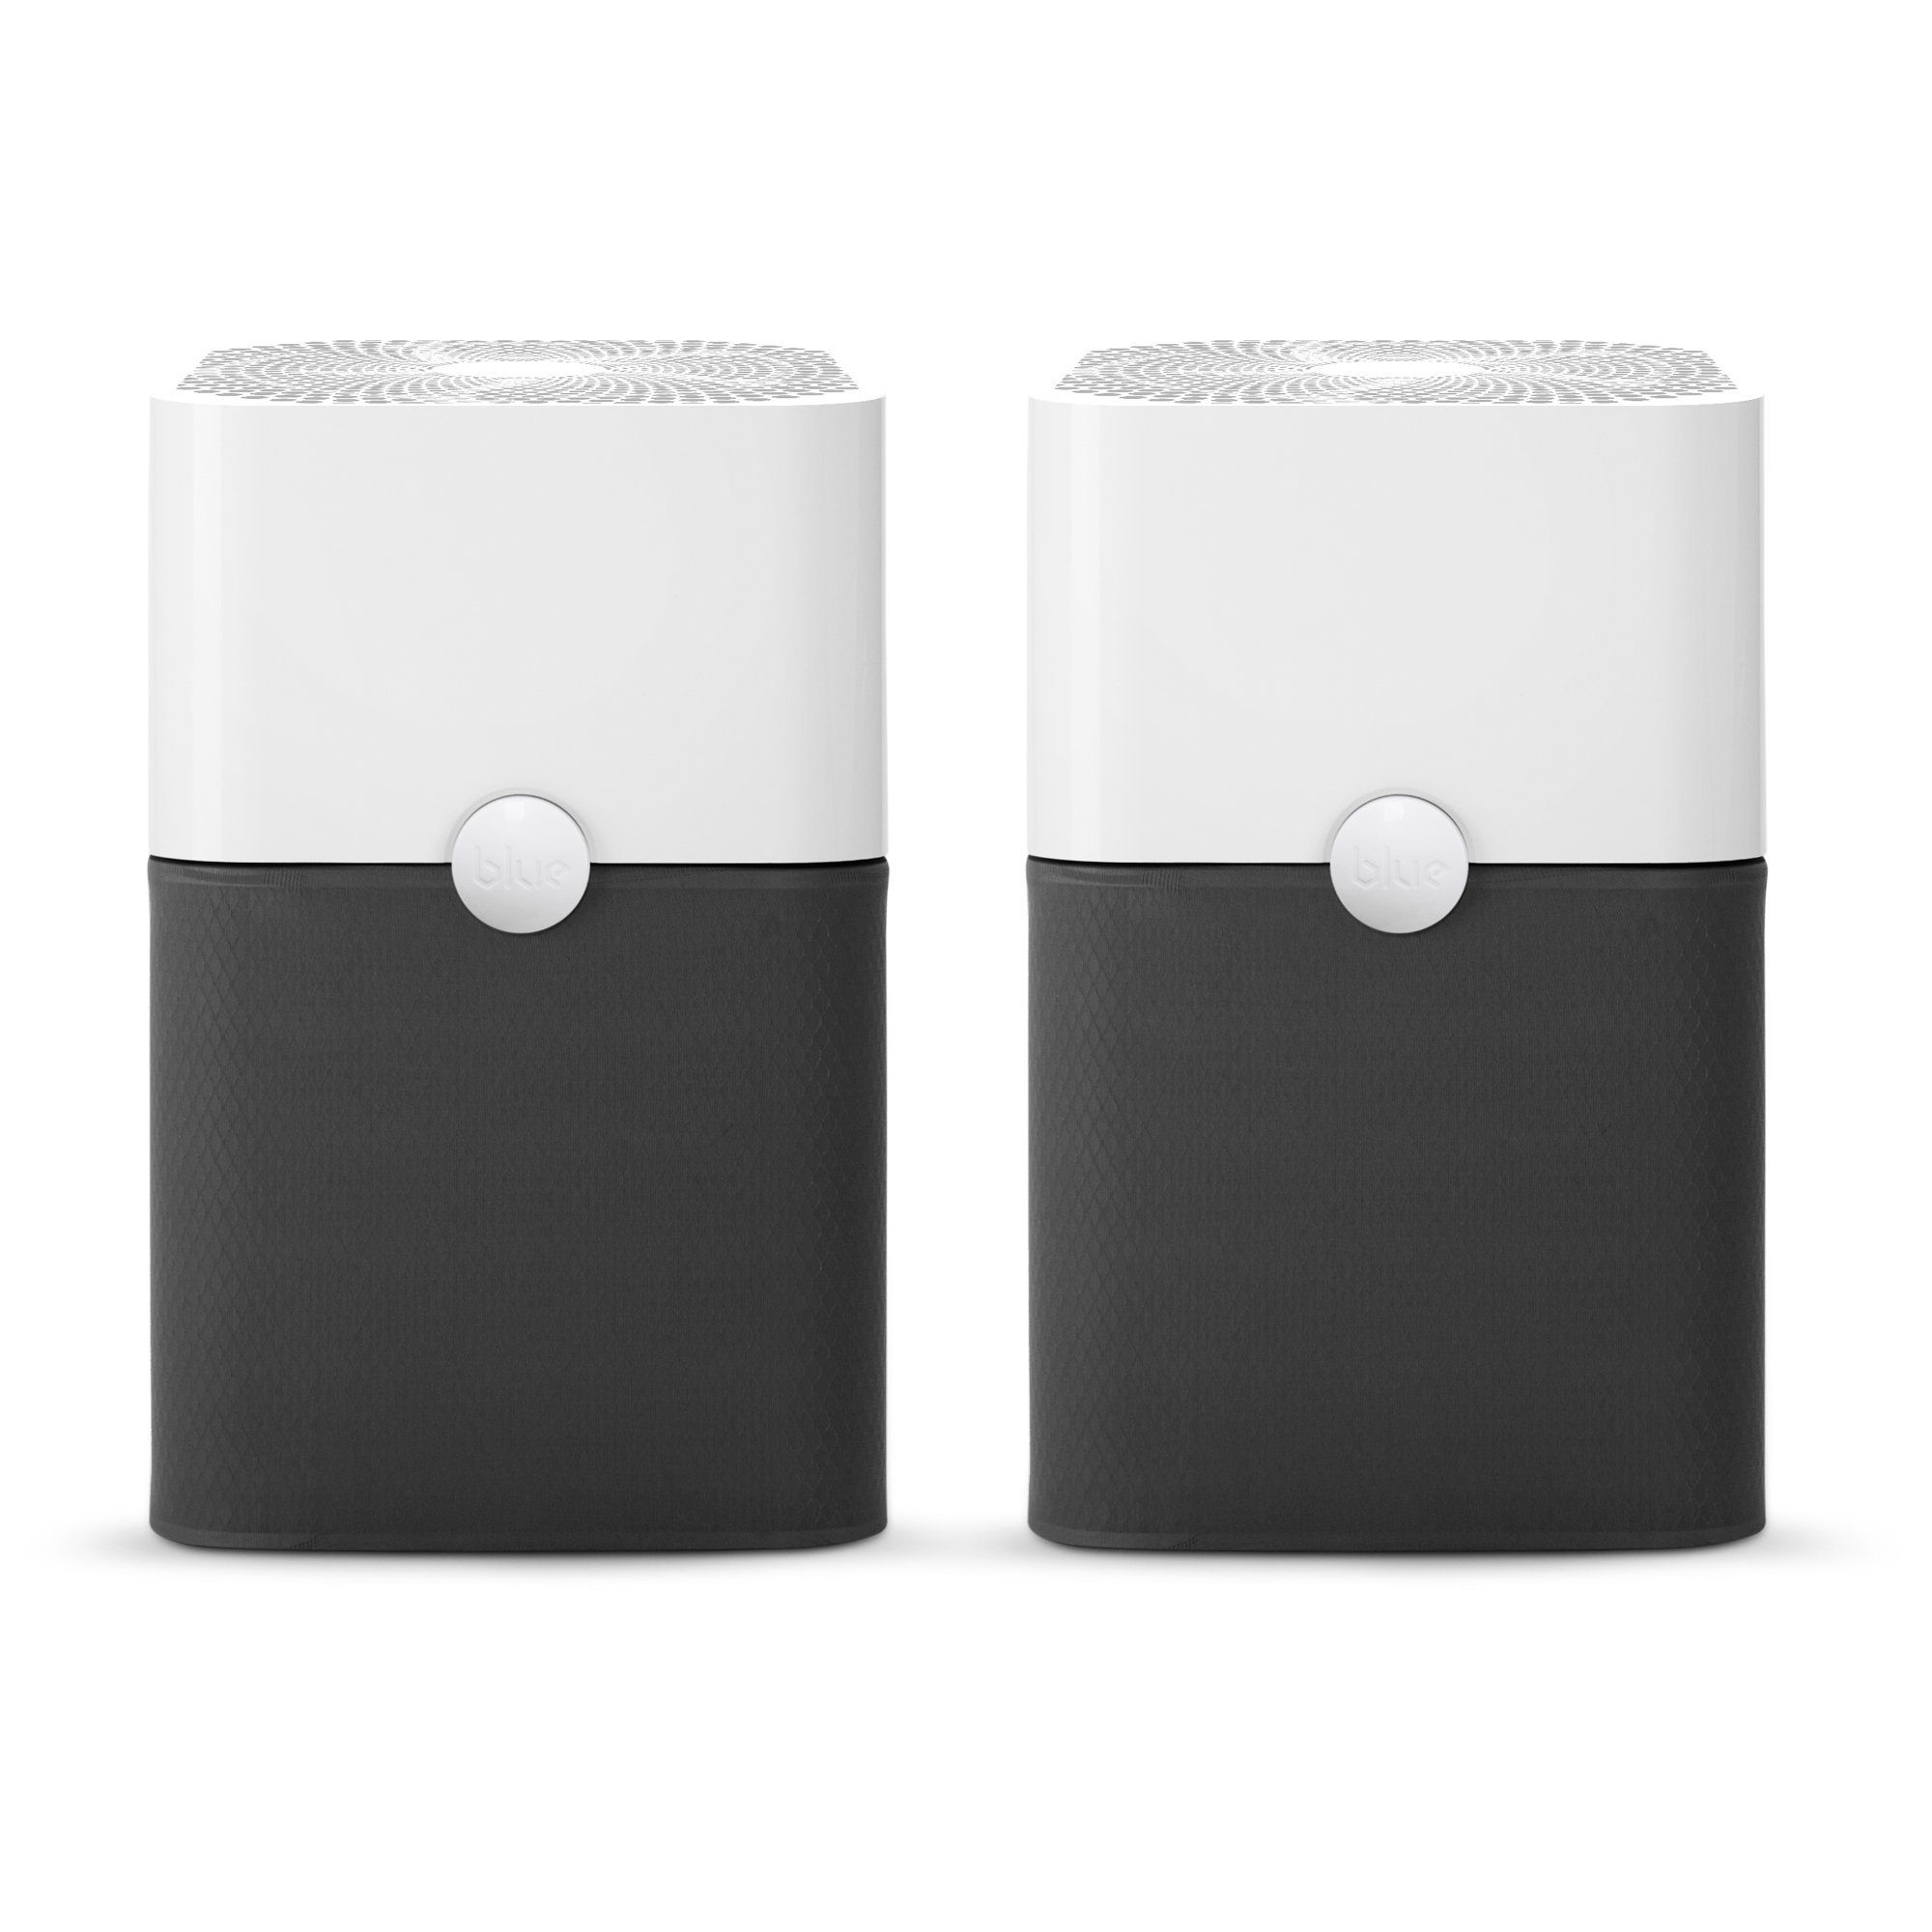 Blue pure 211 air purifier 3 stage with two washable pre